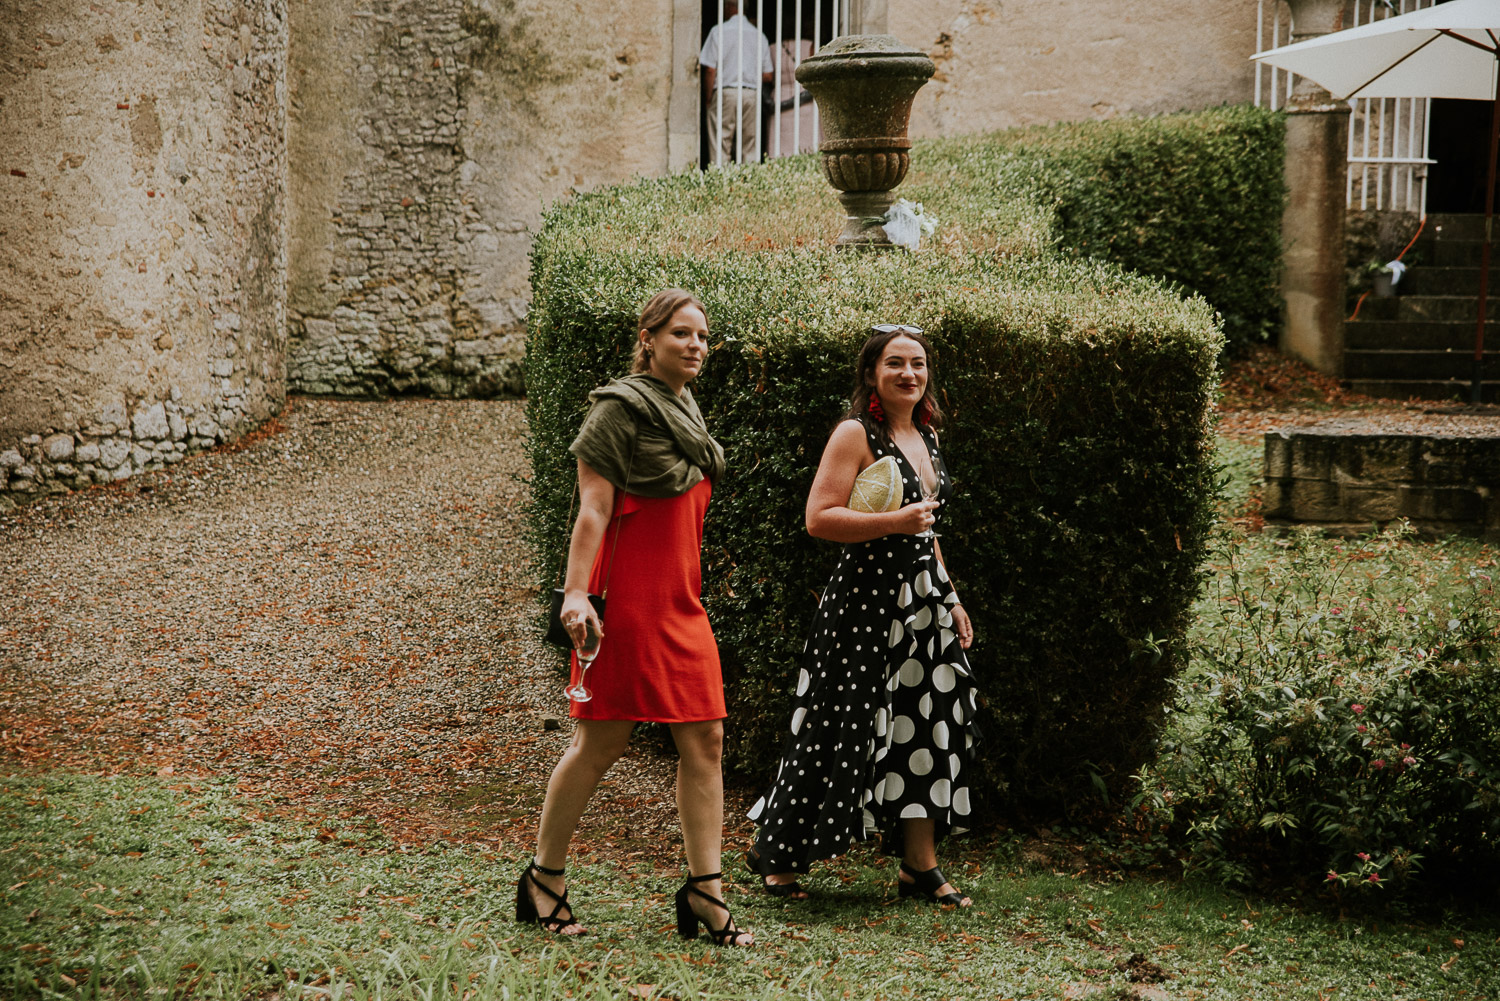 chateau_la_commanderie_mirepoix__wedding_katy_webb_photography_france_UK105